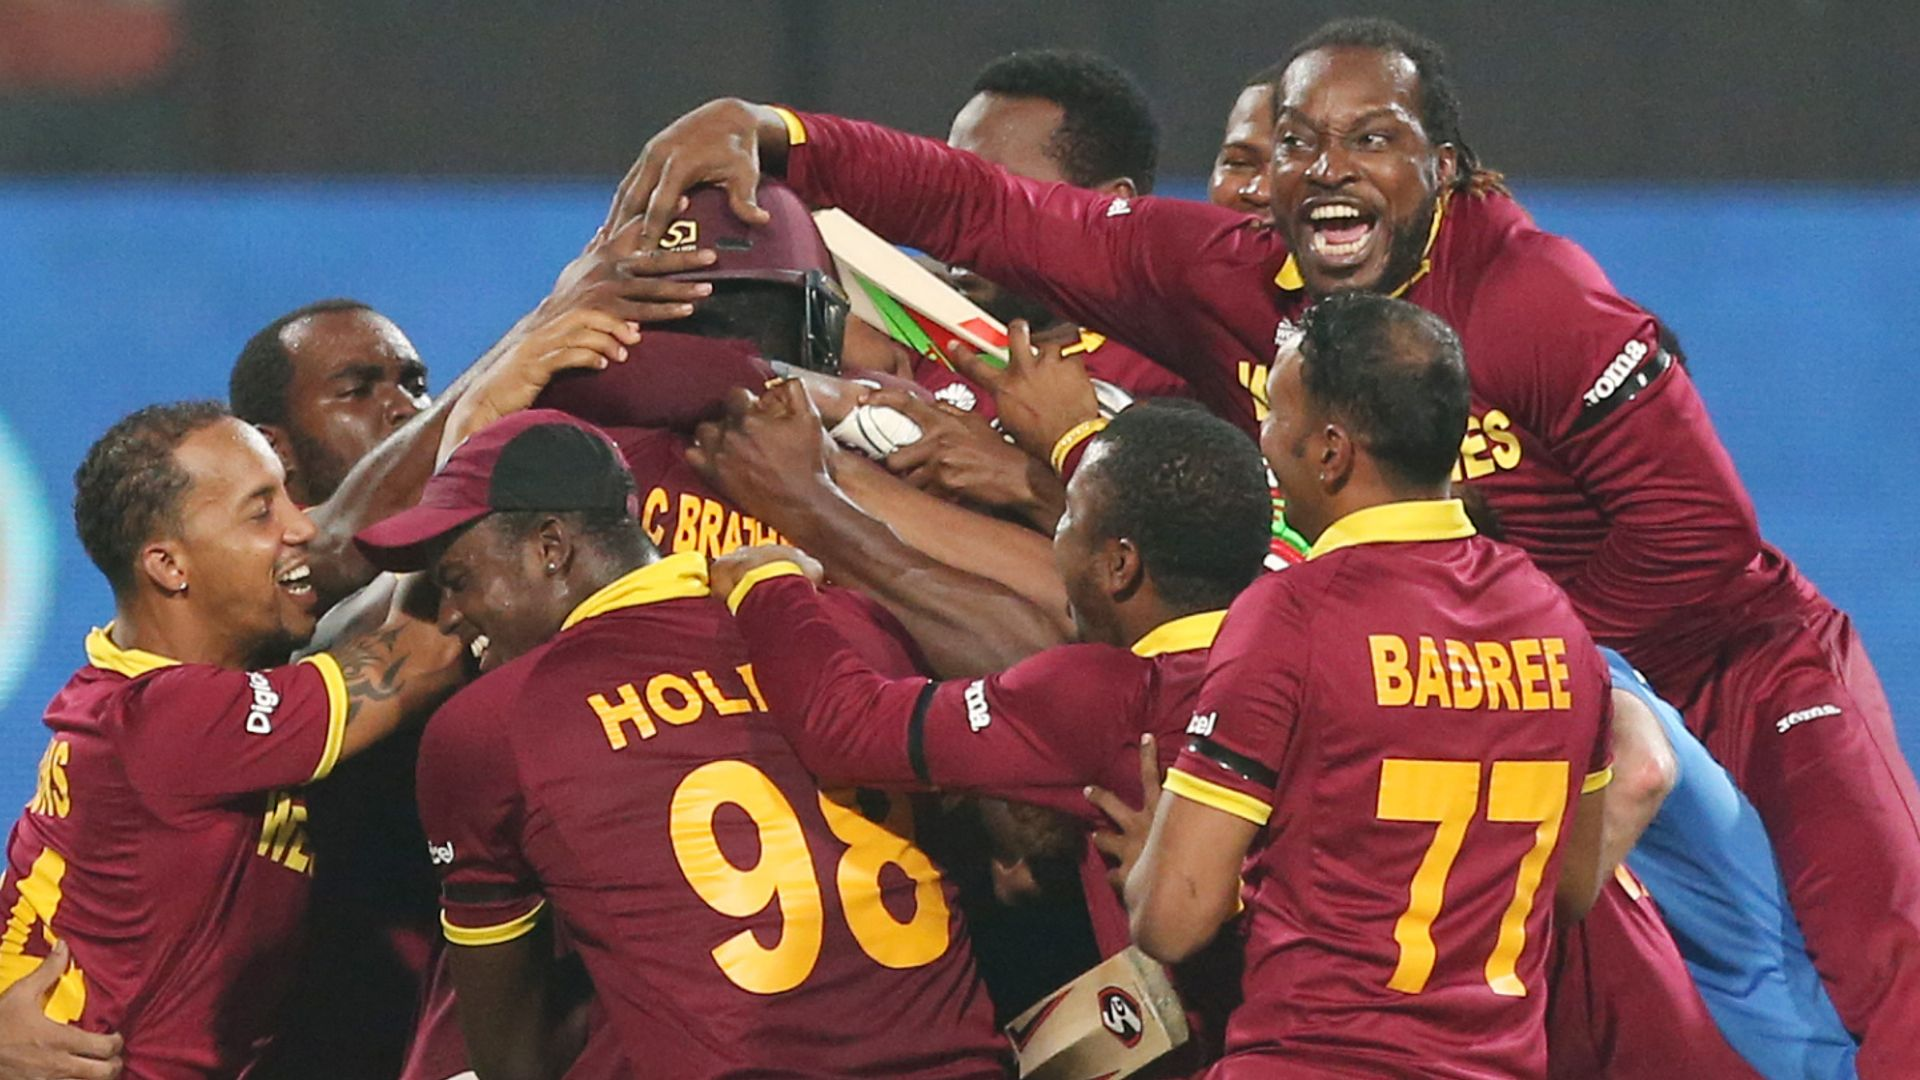 T20 World Cup: All you need to know